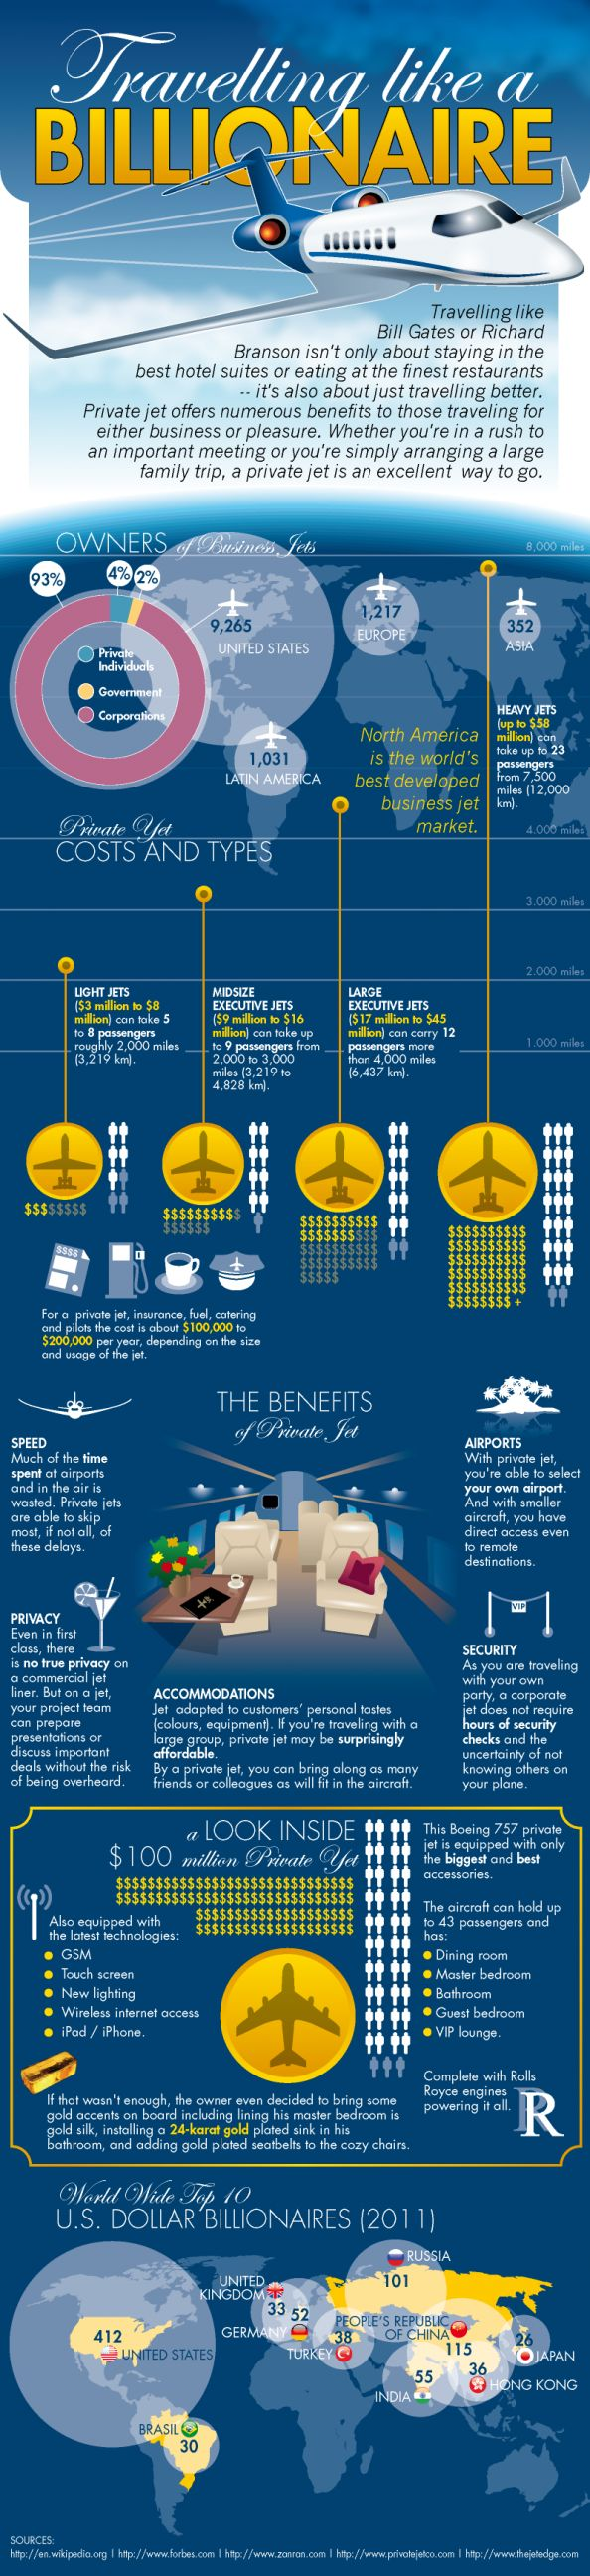 Private jet interior furnished like a vintage train aviation - Charter A Business Jet Like A Billionaire Infographic